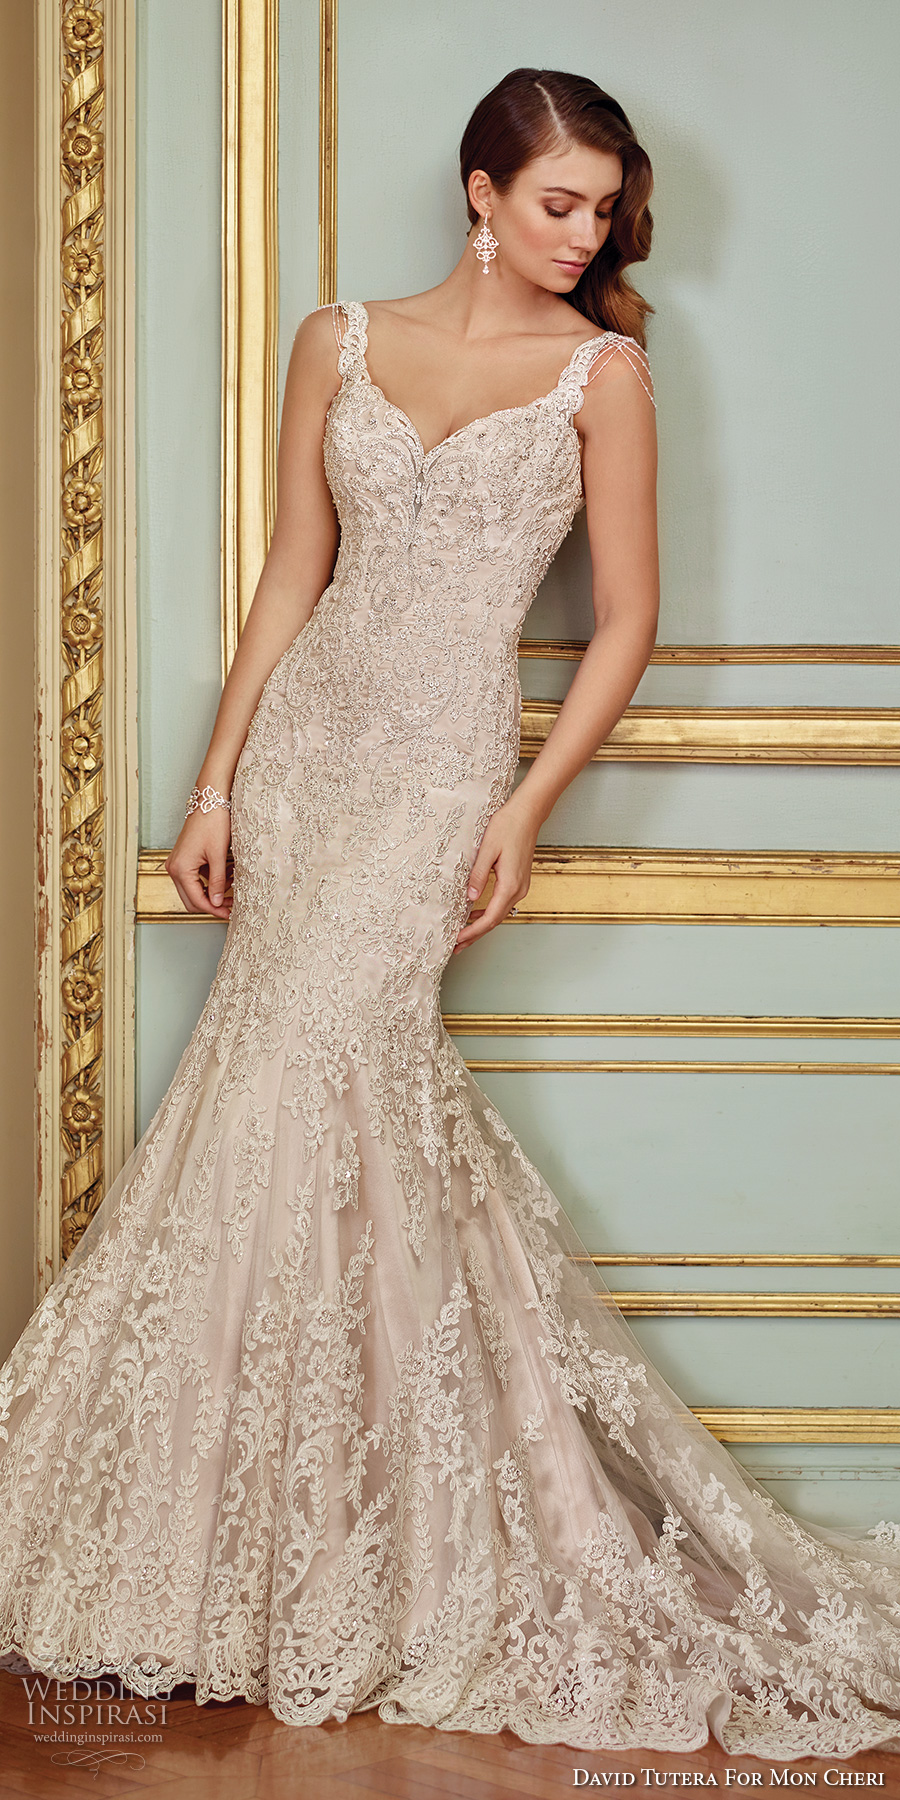 David Tutera Mc Spring 2017 Bridal Sleeveless Embrodiered Strap Sweetheart  Neckline Full Embellishment Elegant Glamorous Fit